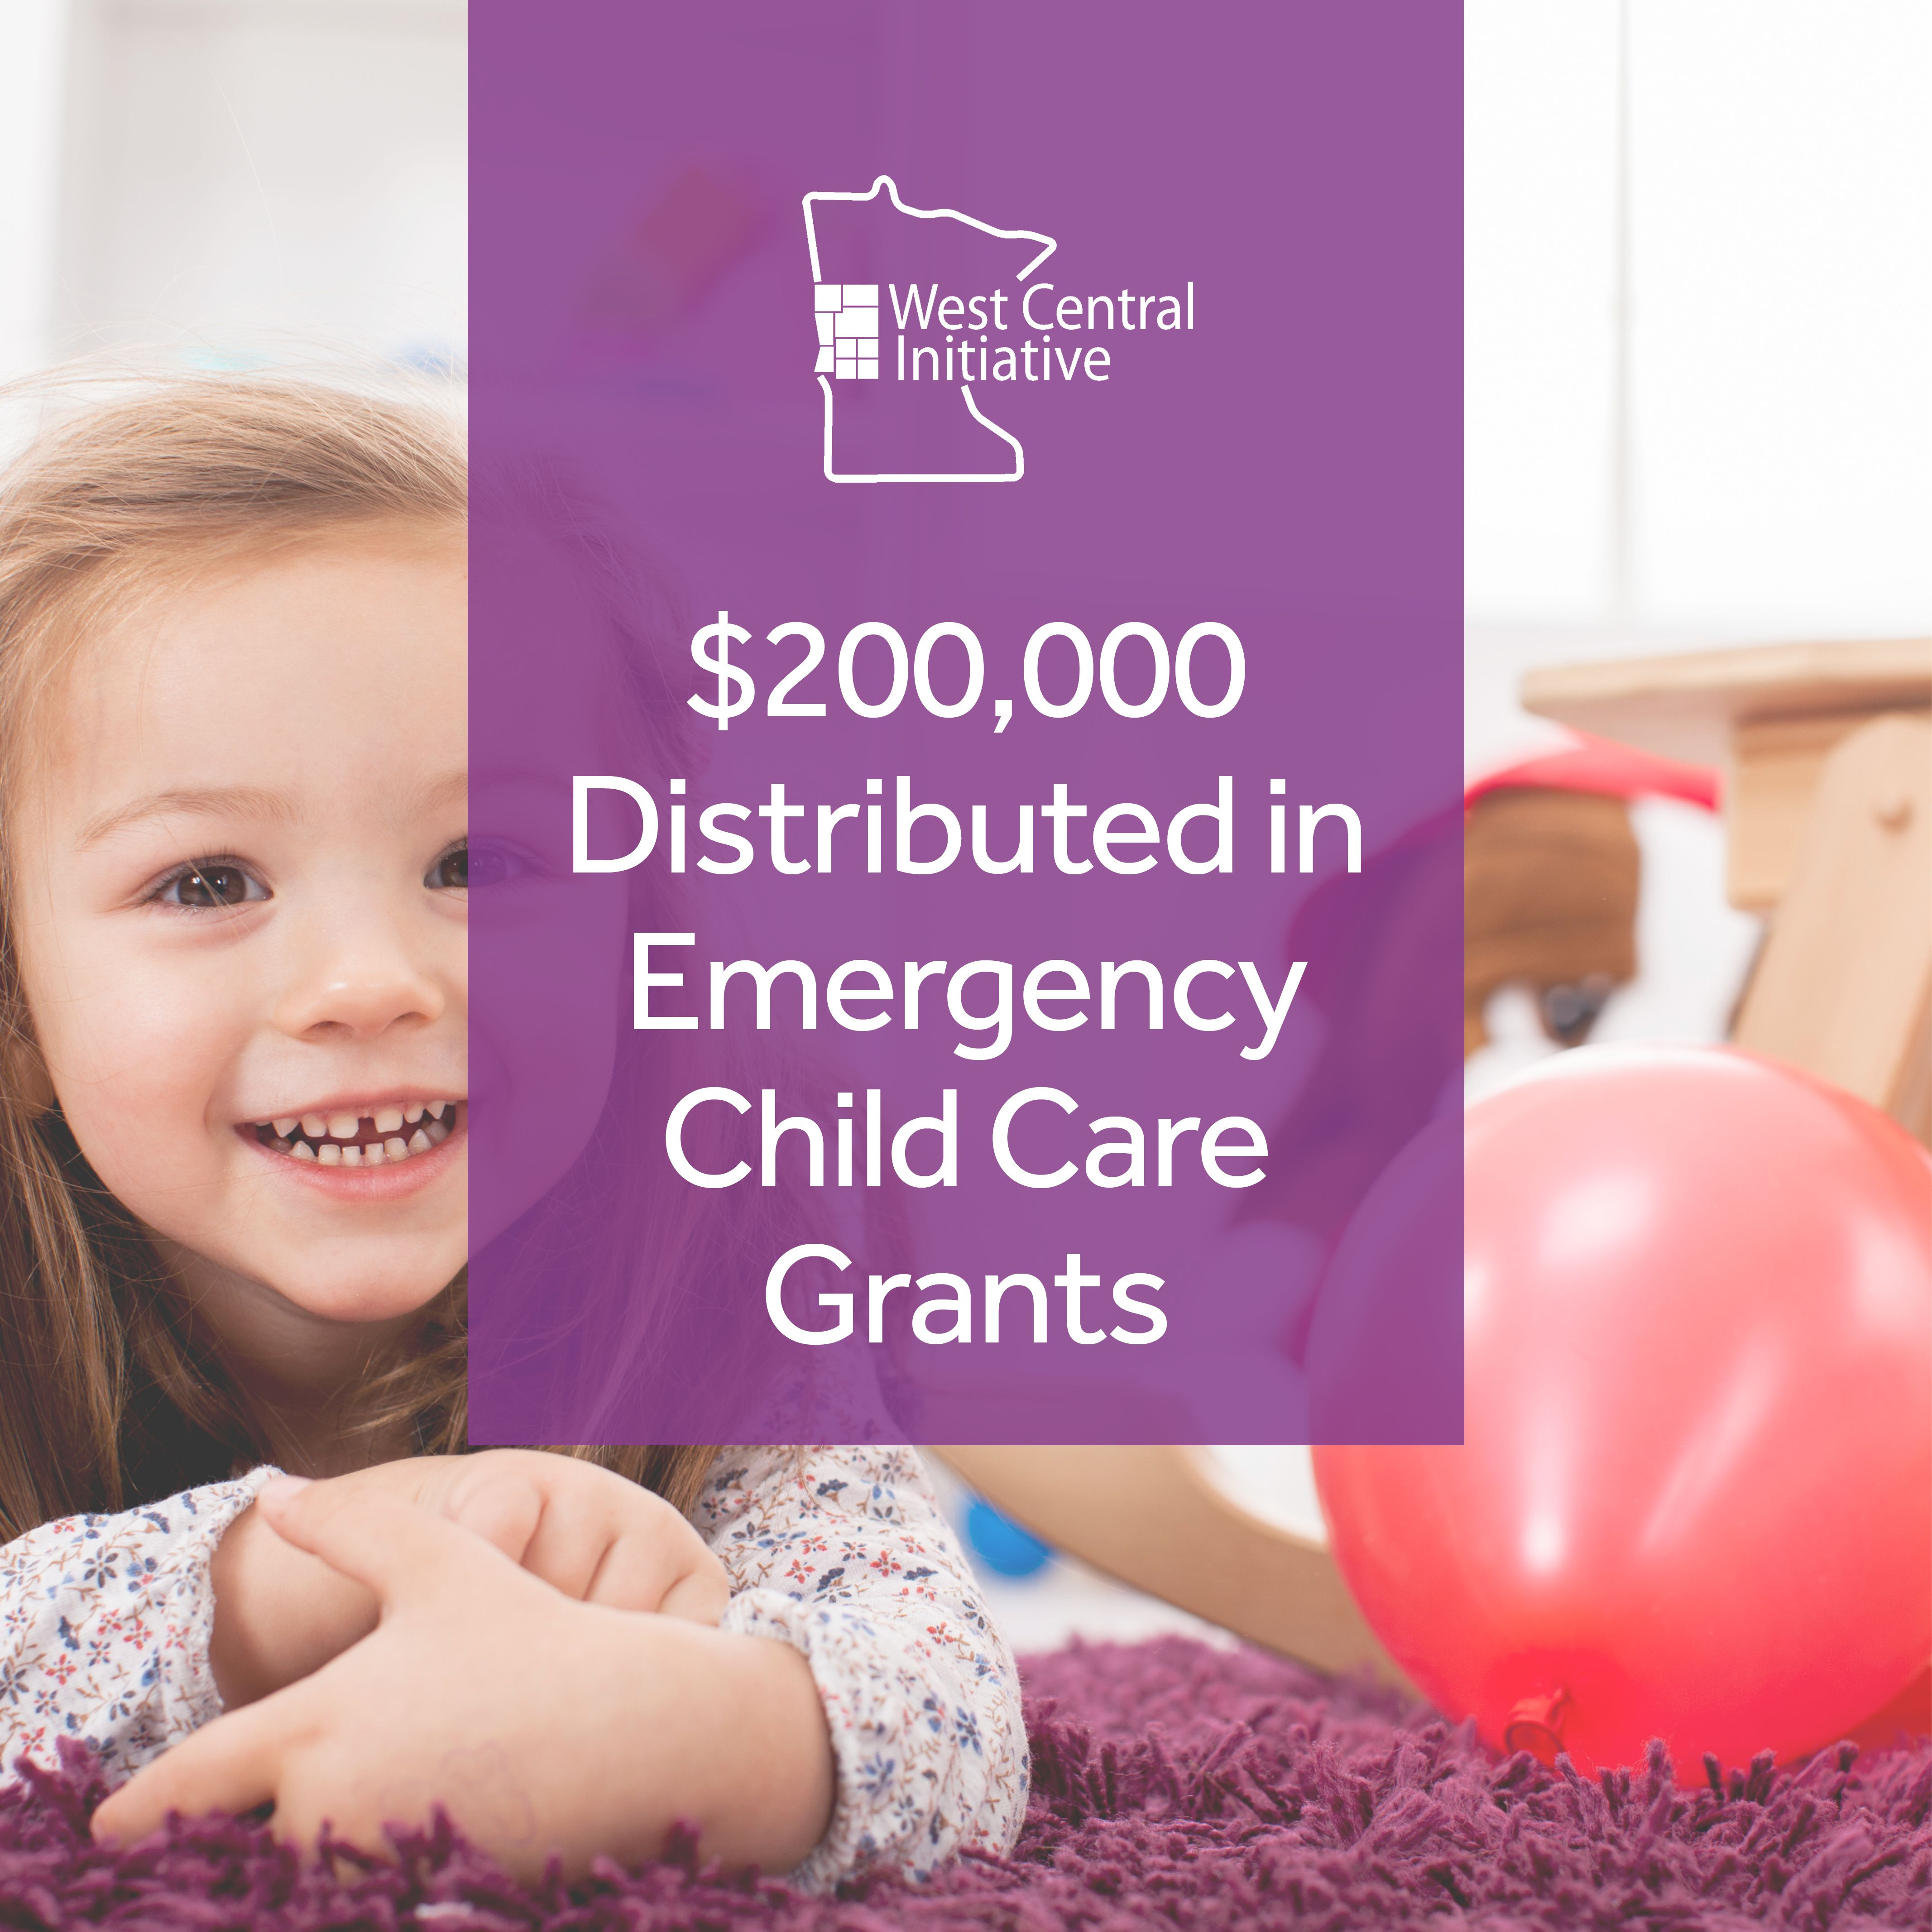 West Central Initiative Distributes $200,000 of Emergency Child Care Grants in West Central Minnesota